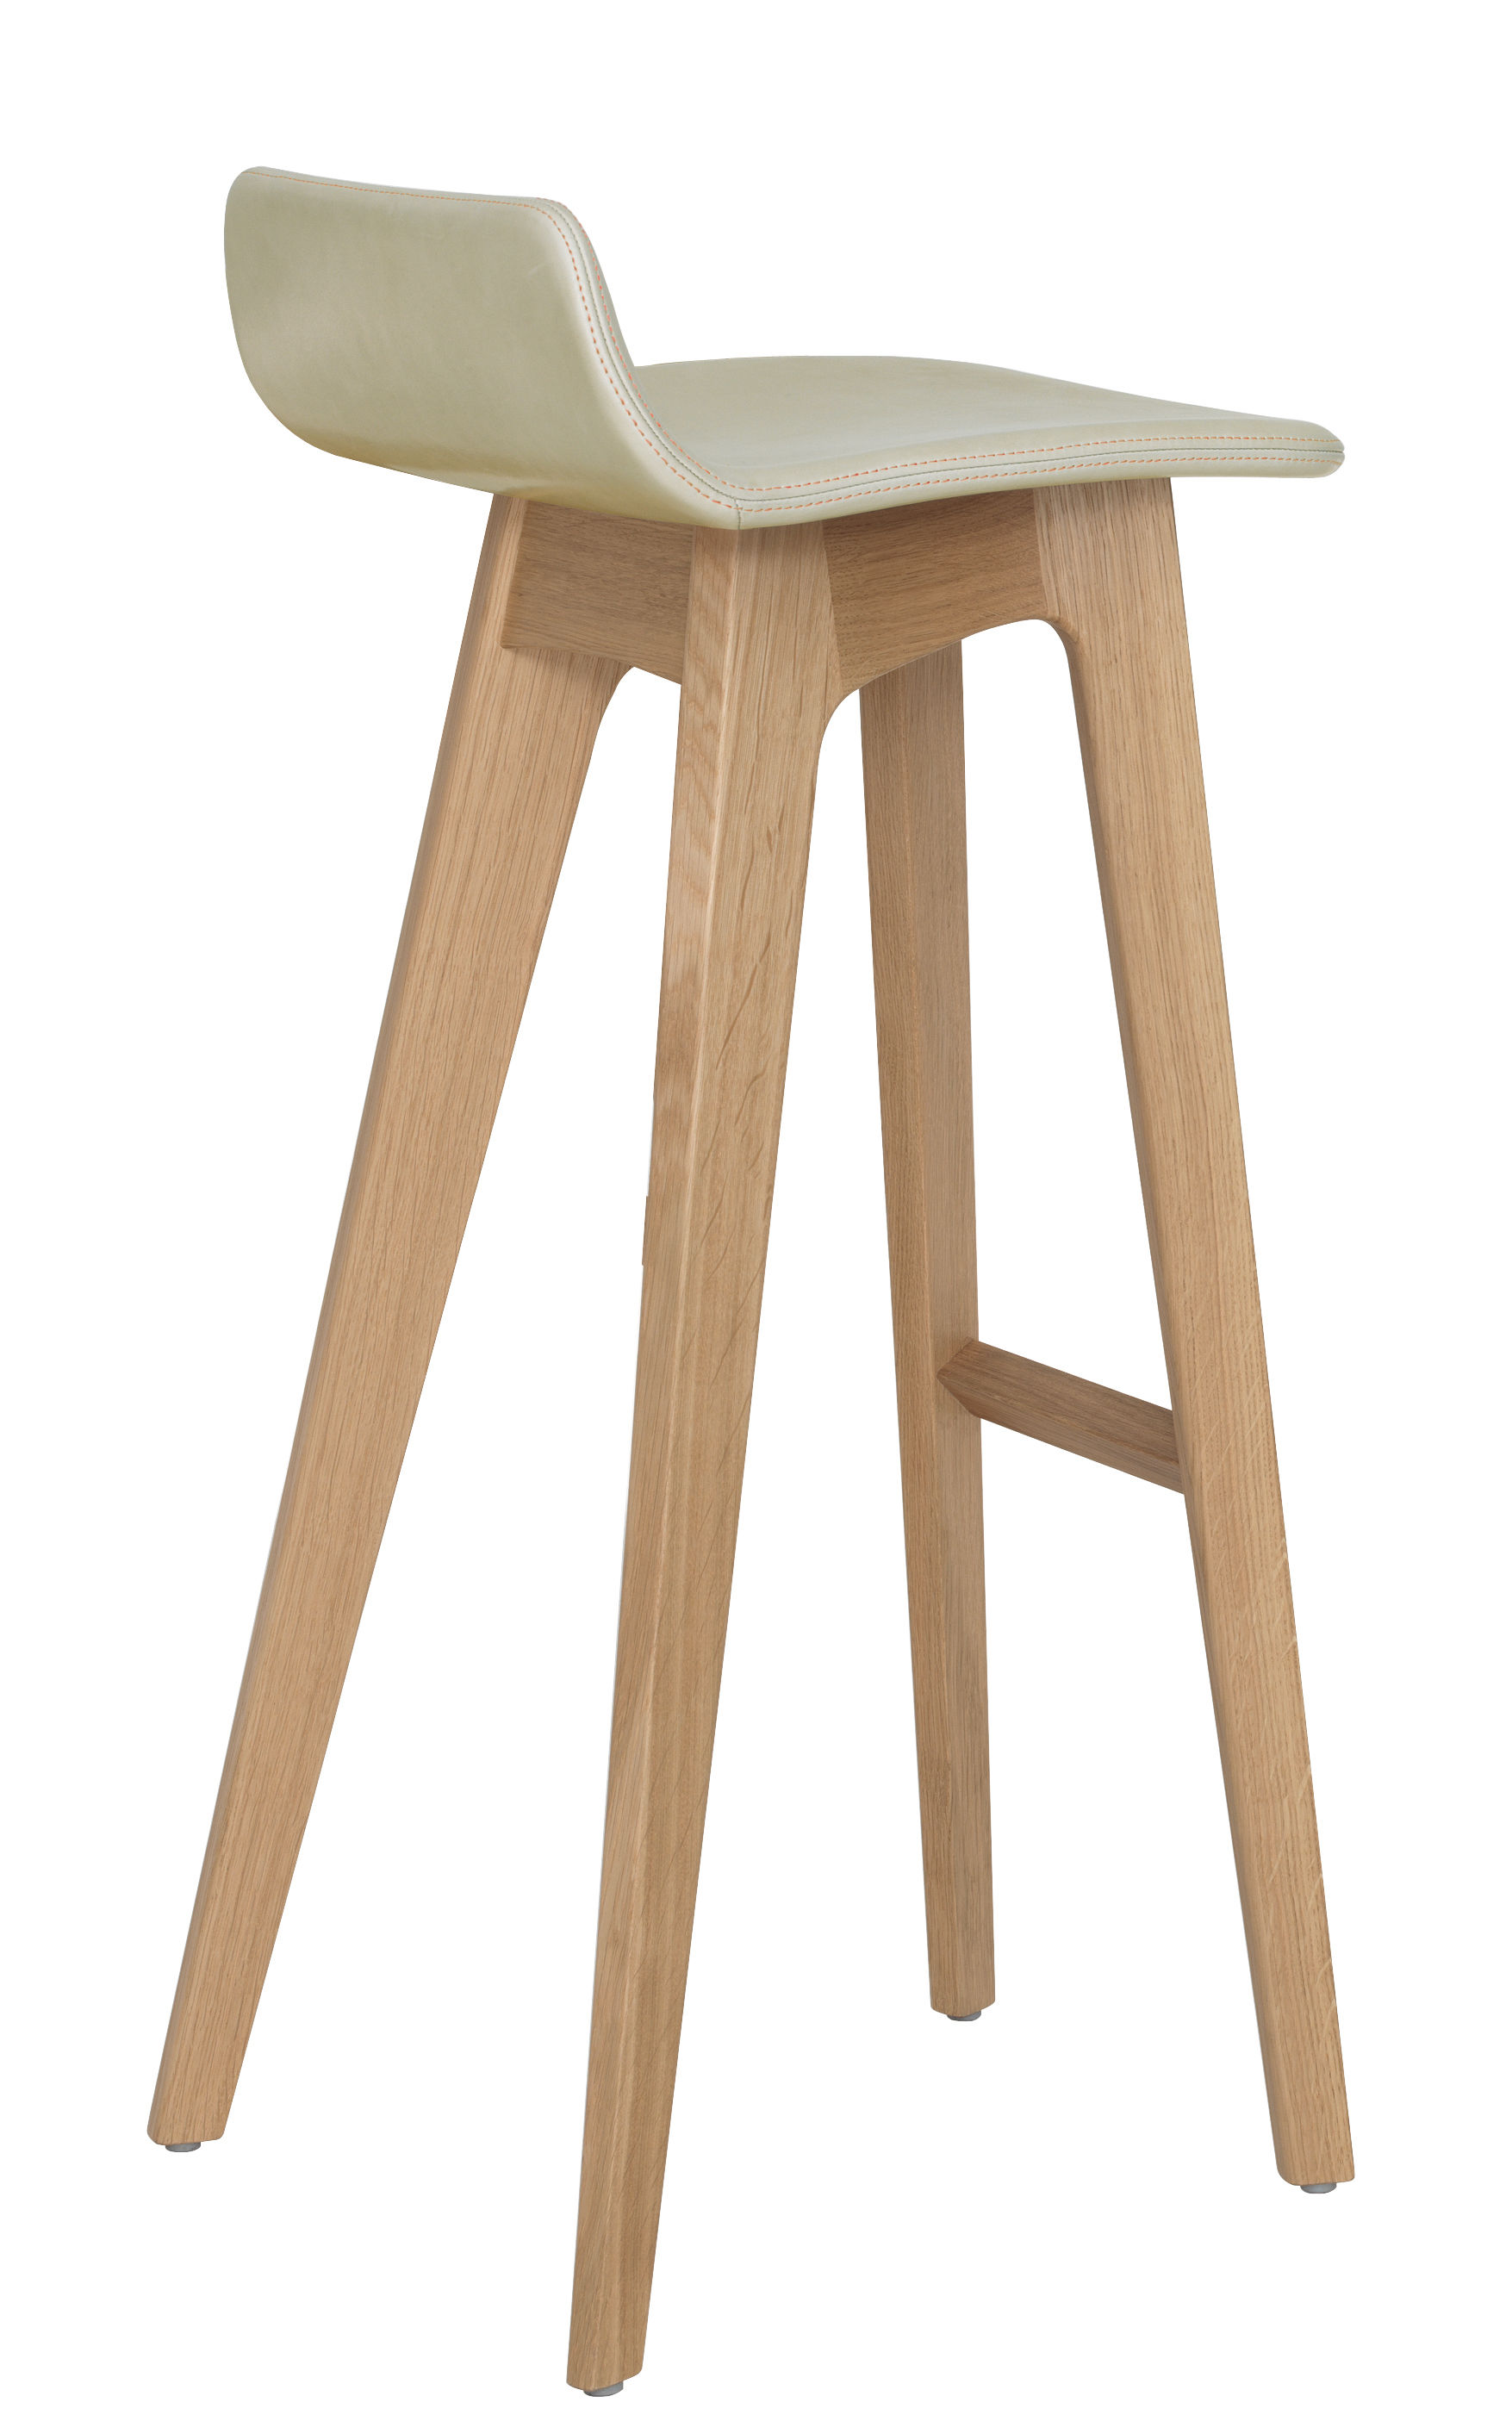 tabouret de bar morph assise cuir h 80 cm structure ch ne naturel rev tement cuir beige. Black Bedroom Furniture Sets. Home Design Ideas